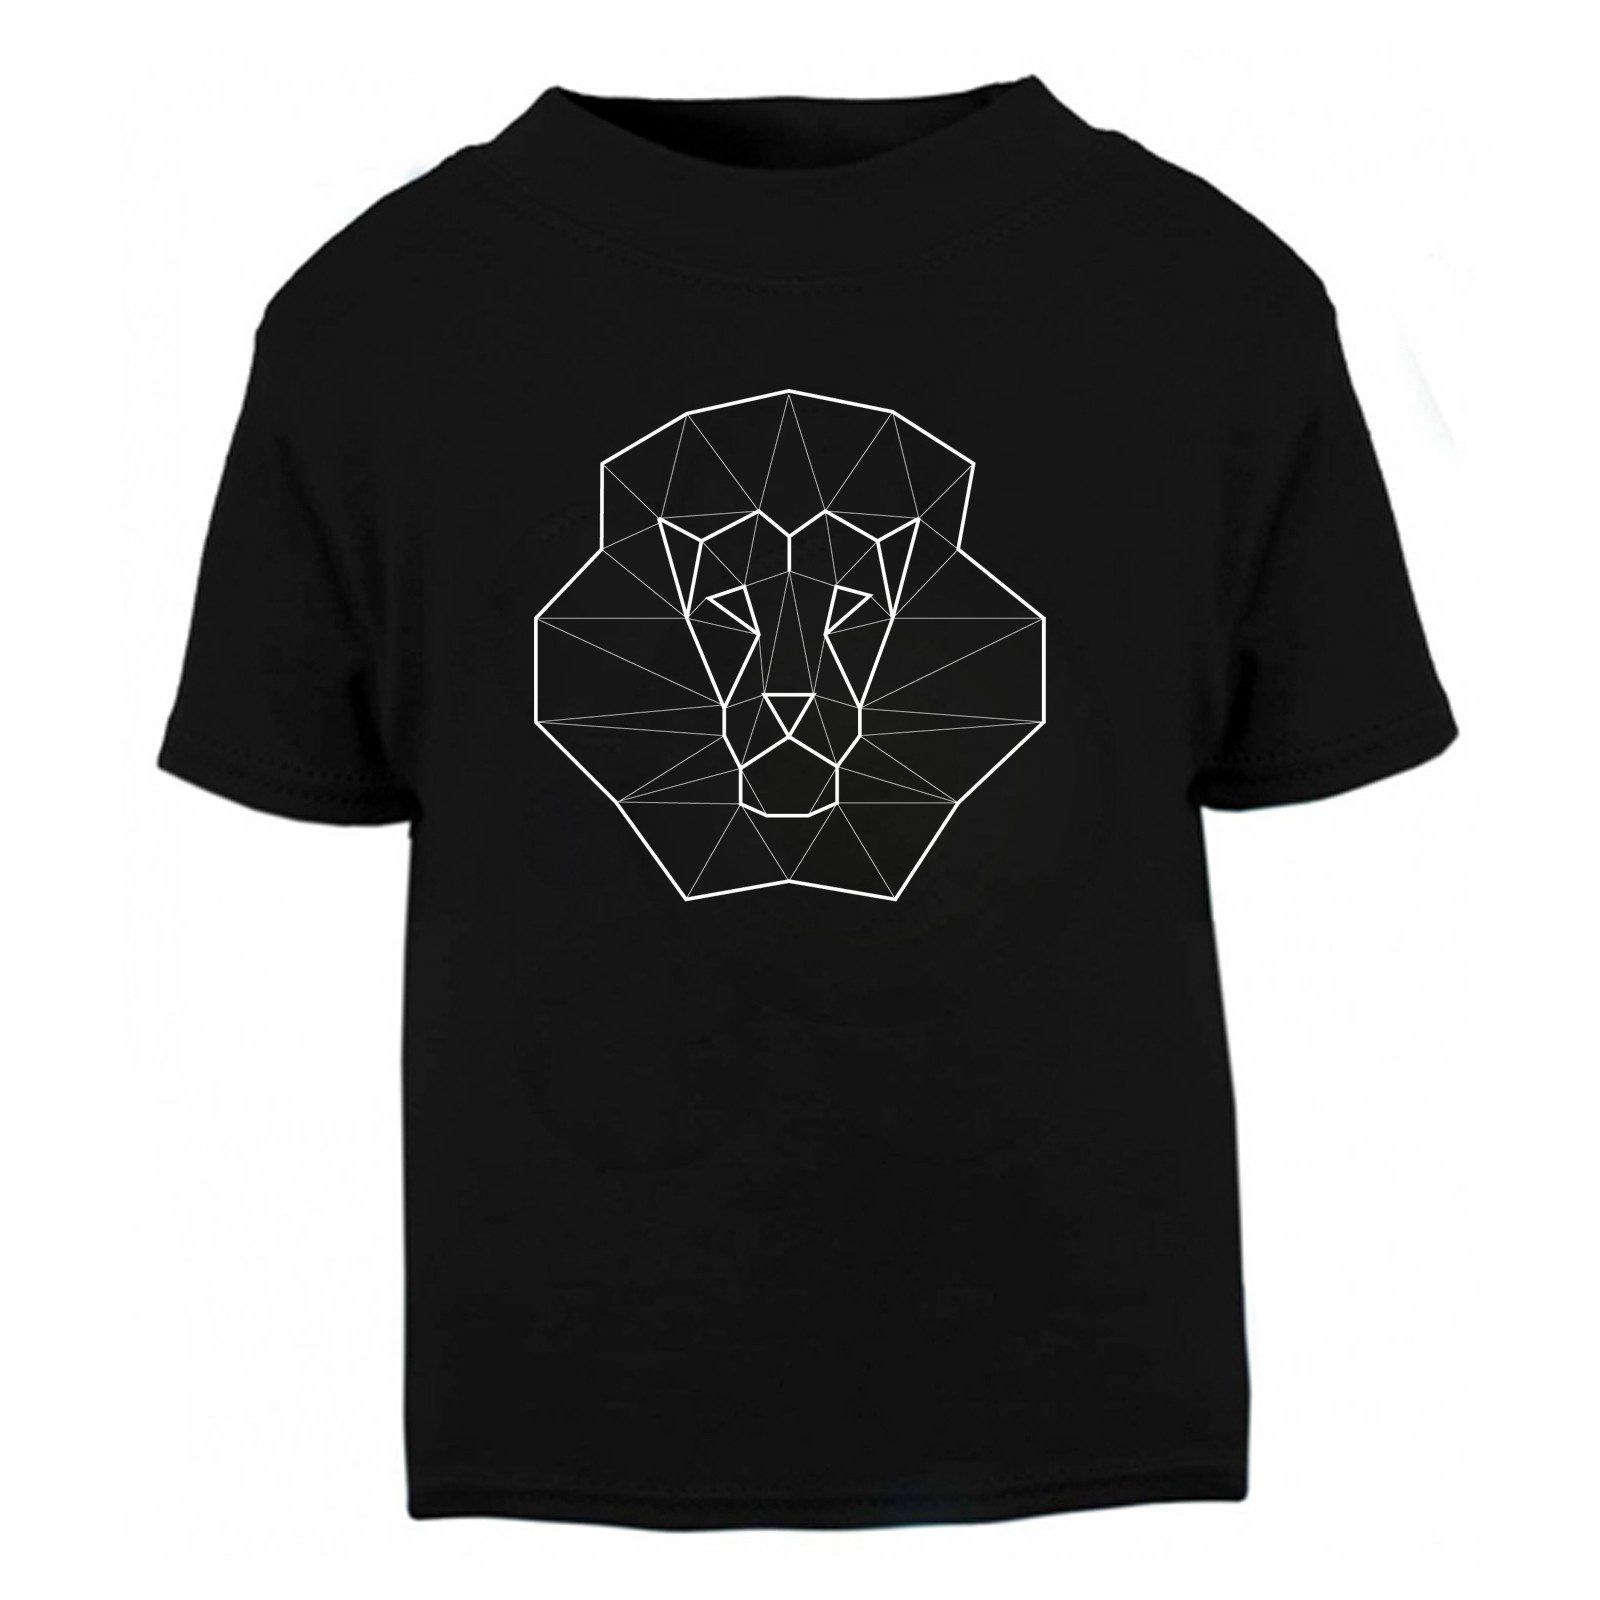 T-shirts - Geometric Lion Kids T Shirt